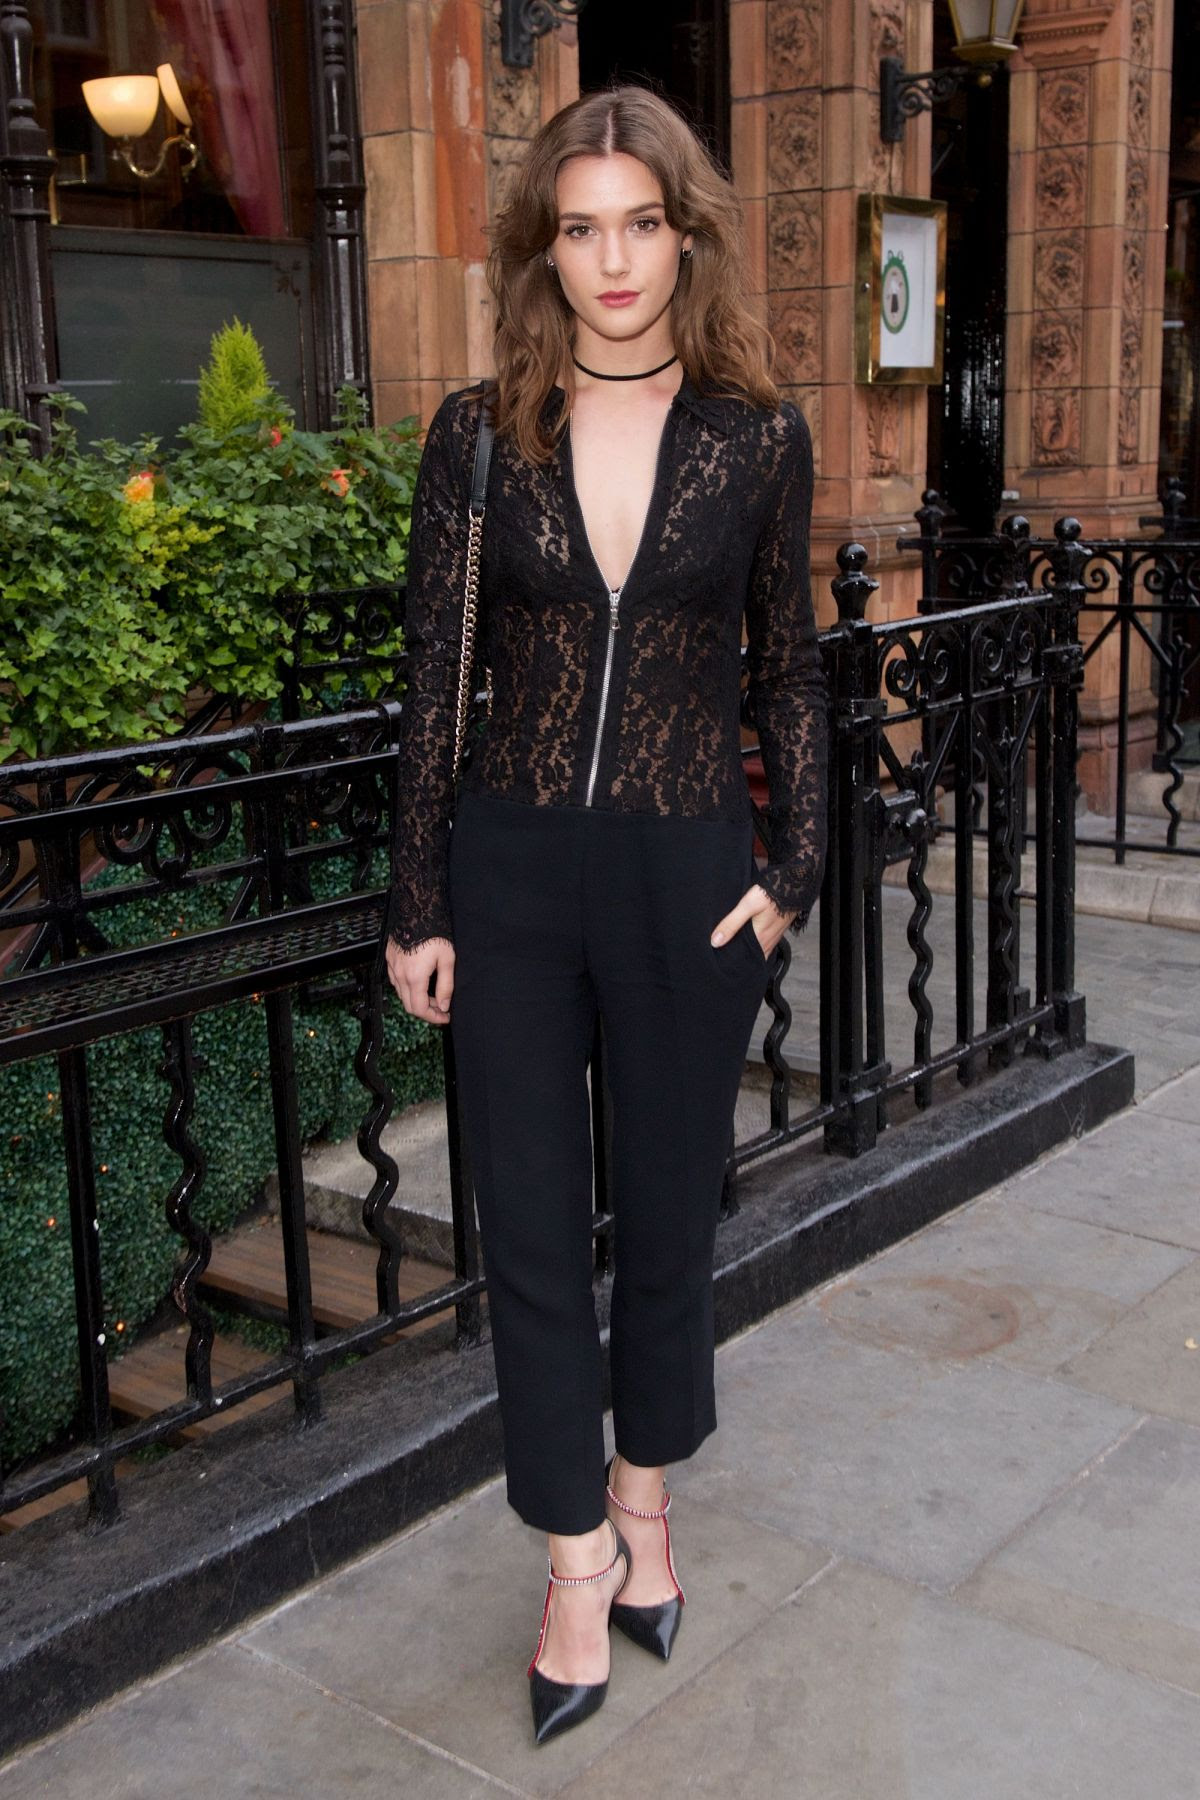 SAI BENNETT at Lady Dior Party in London 05/30/2016